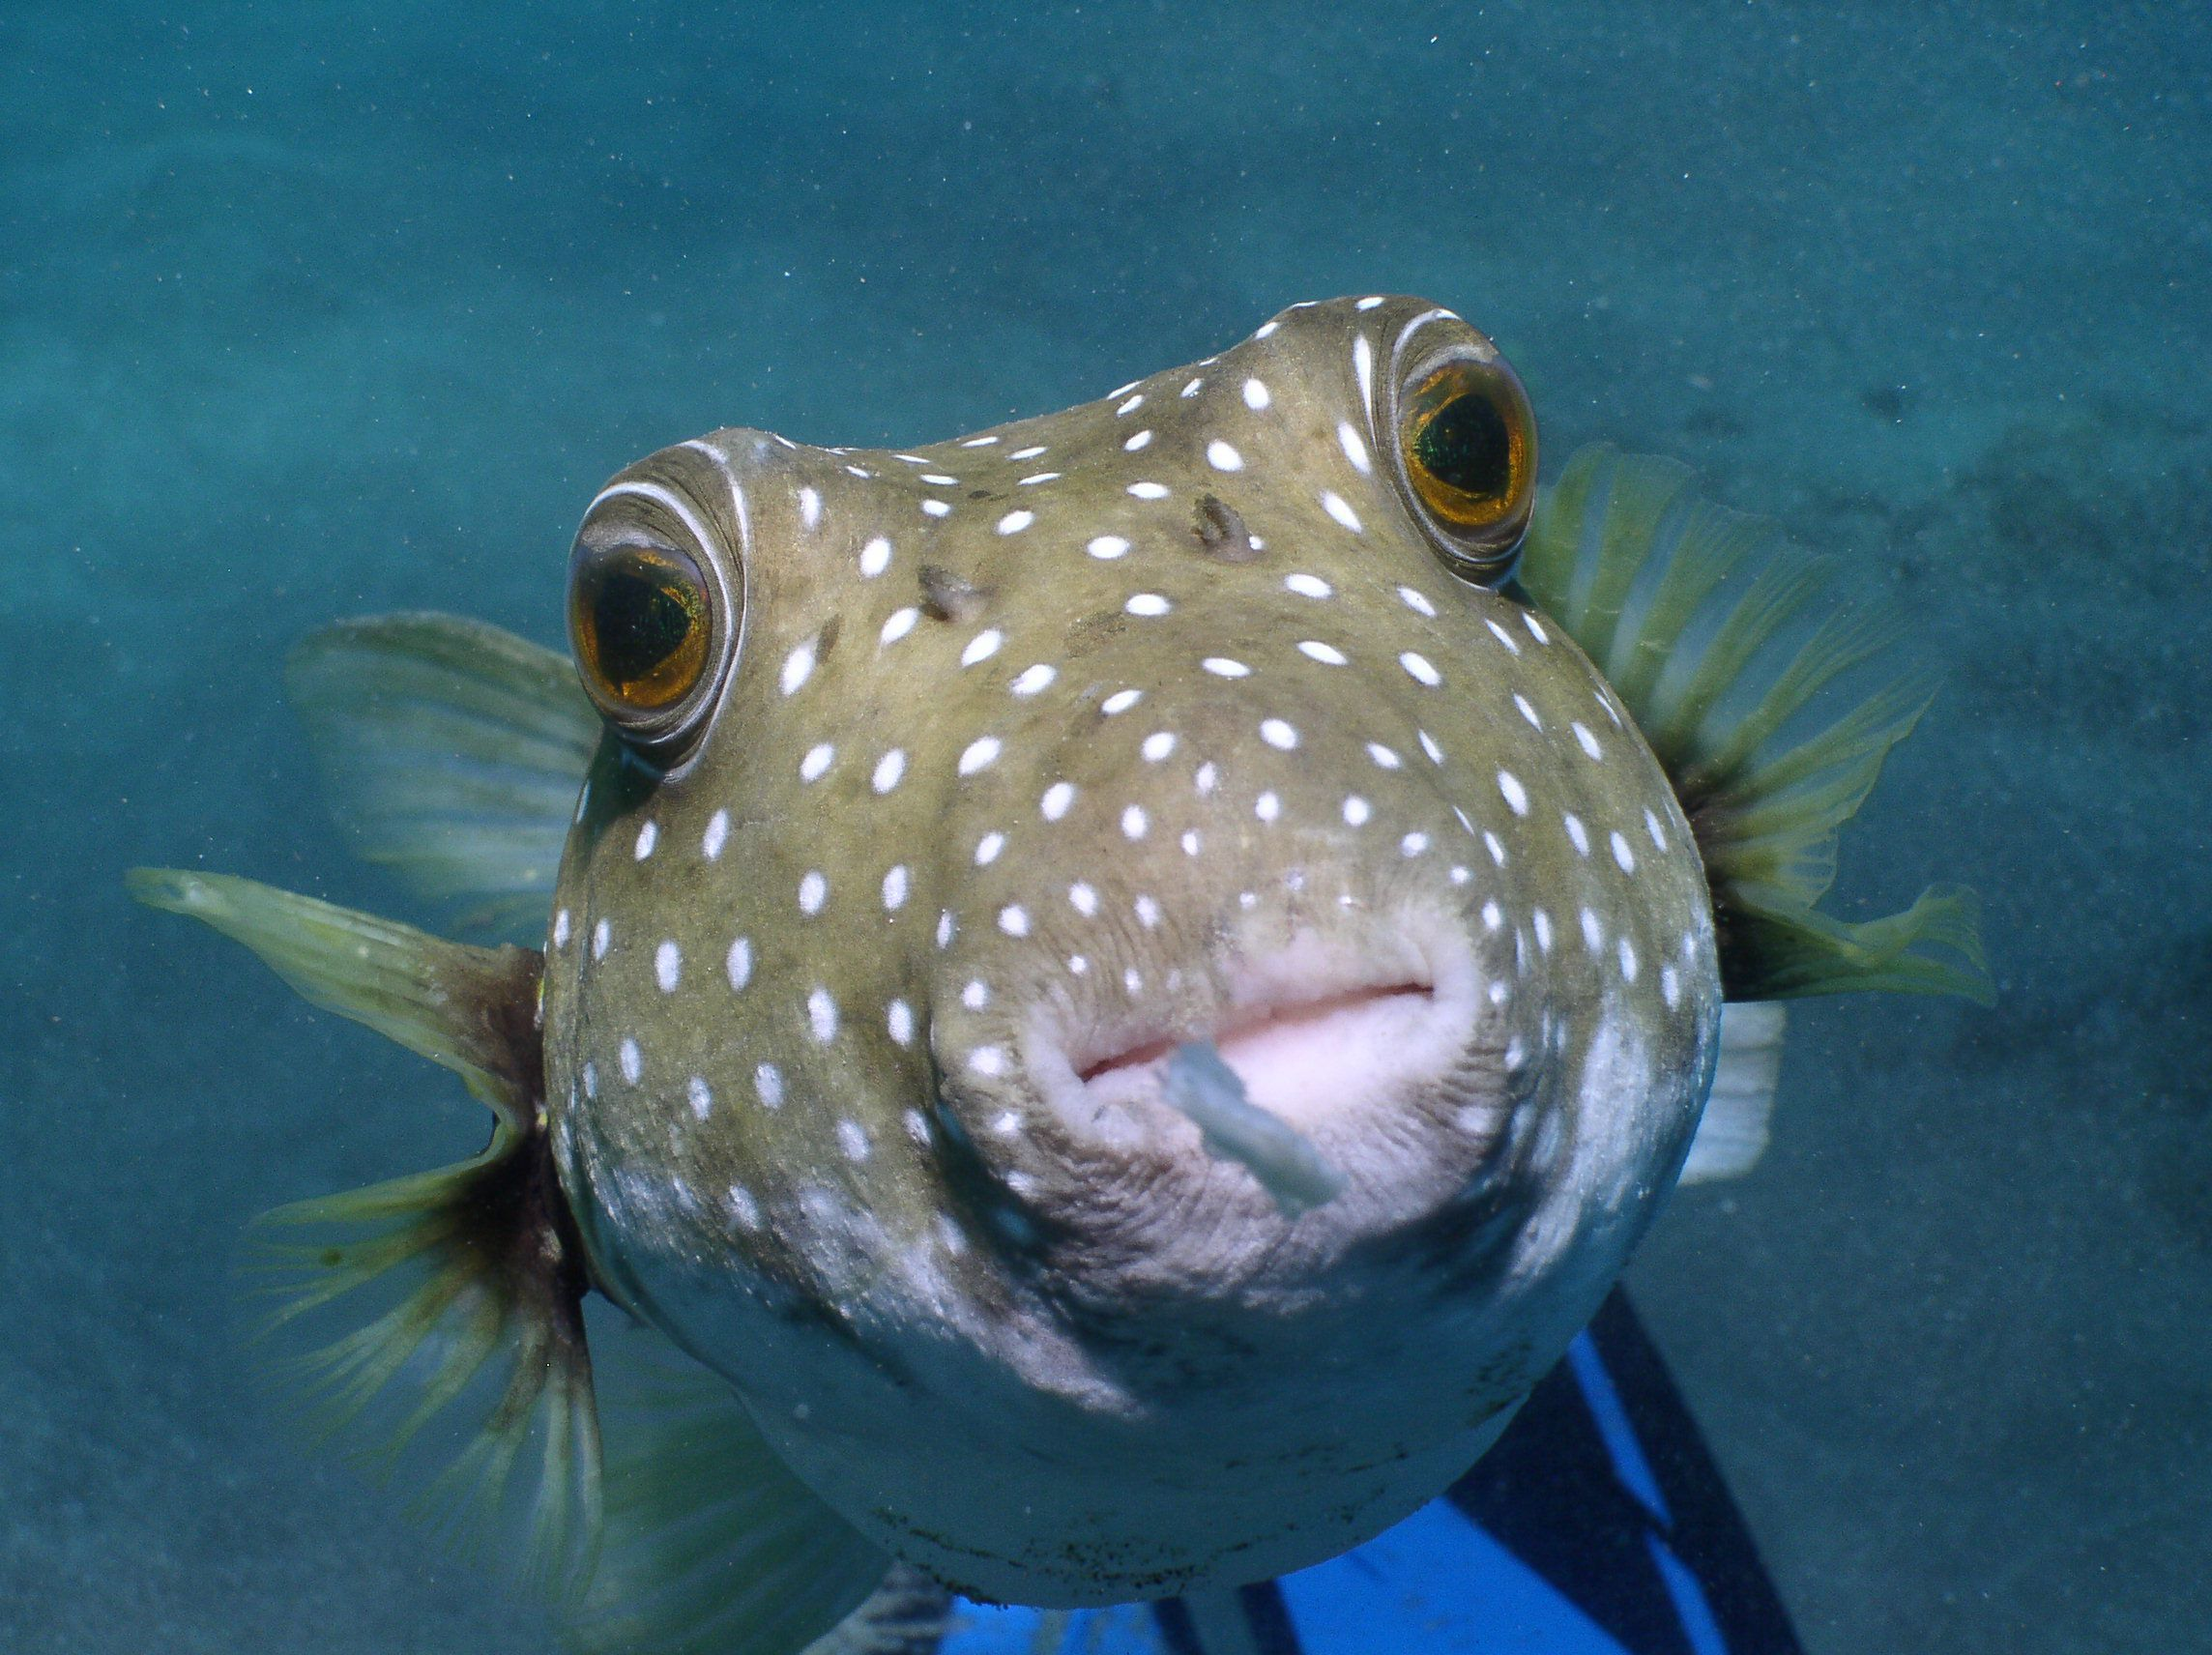 Blowfish wallpapers backgrounds for A puffer fish